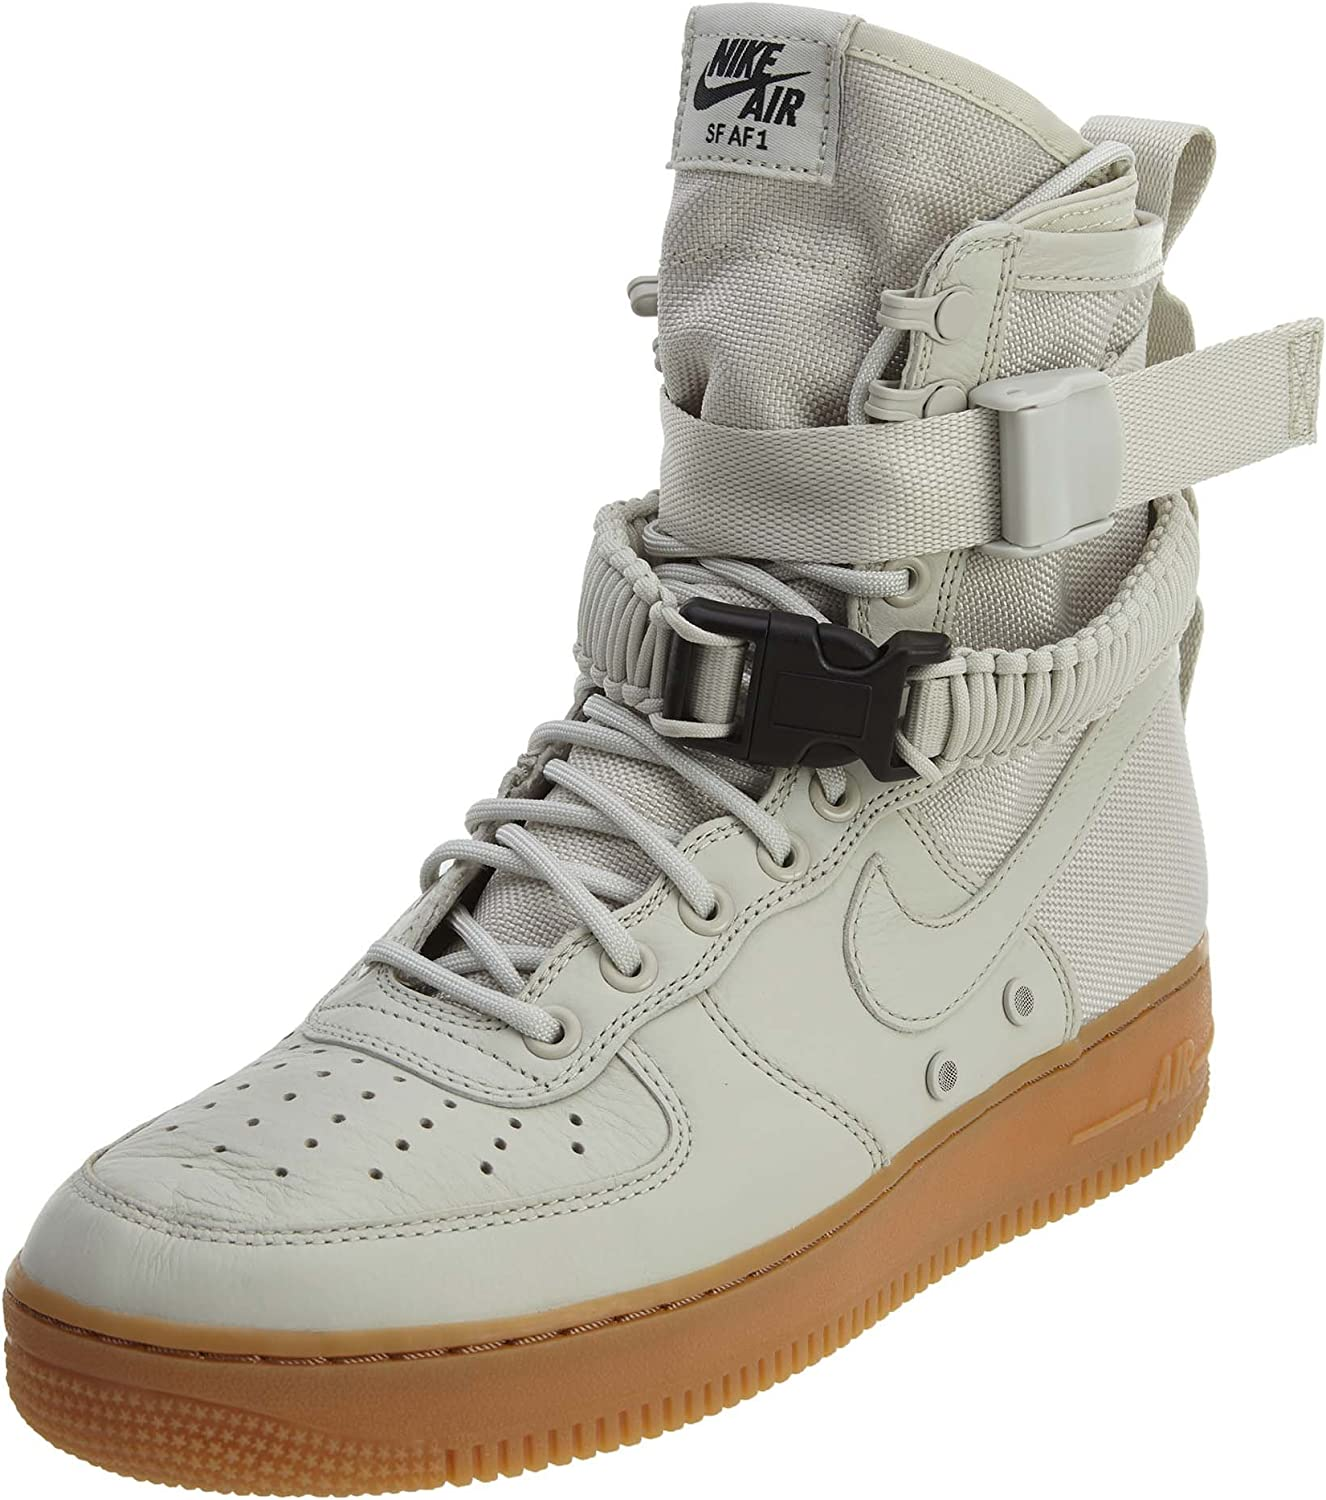 nike sf air force 1 special field